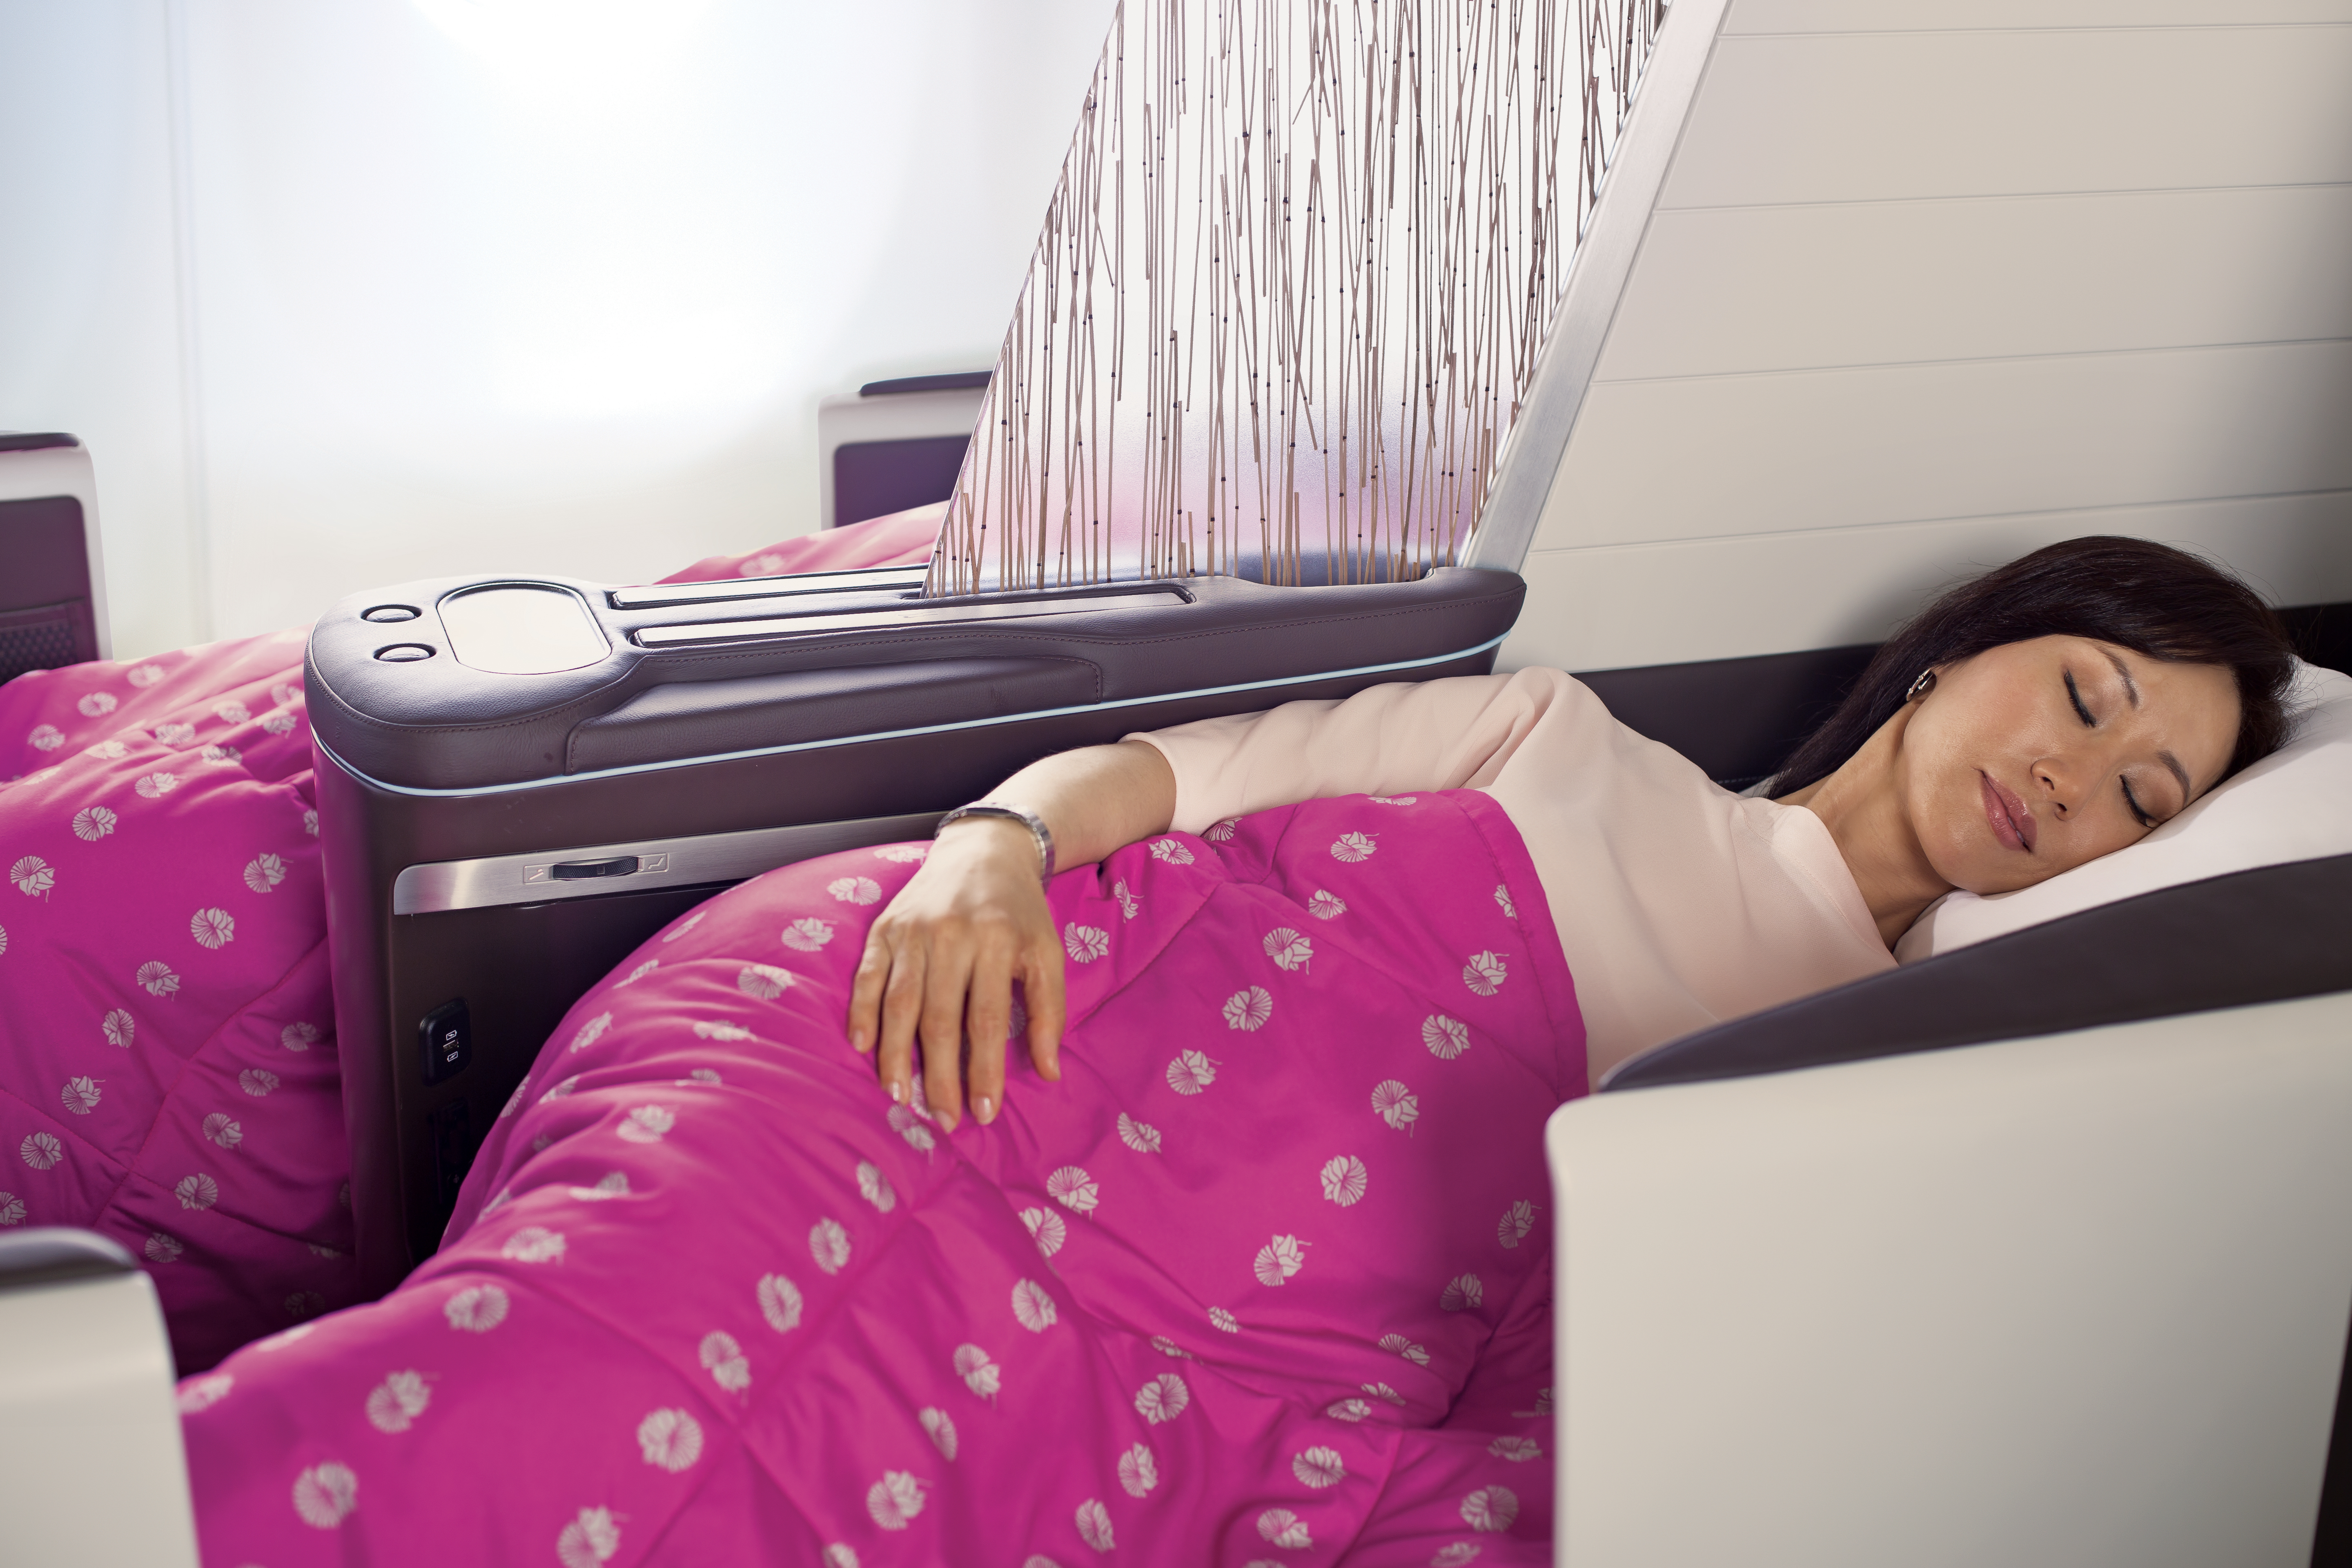 Hawaiian Airlines New Business Class Seat © Hawaiian Airlines